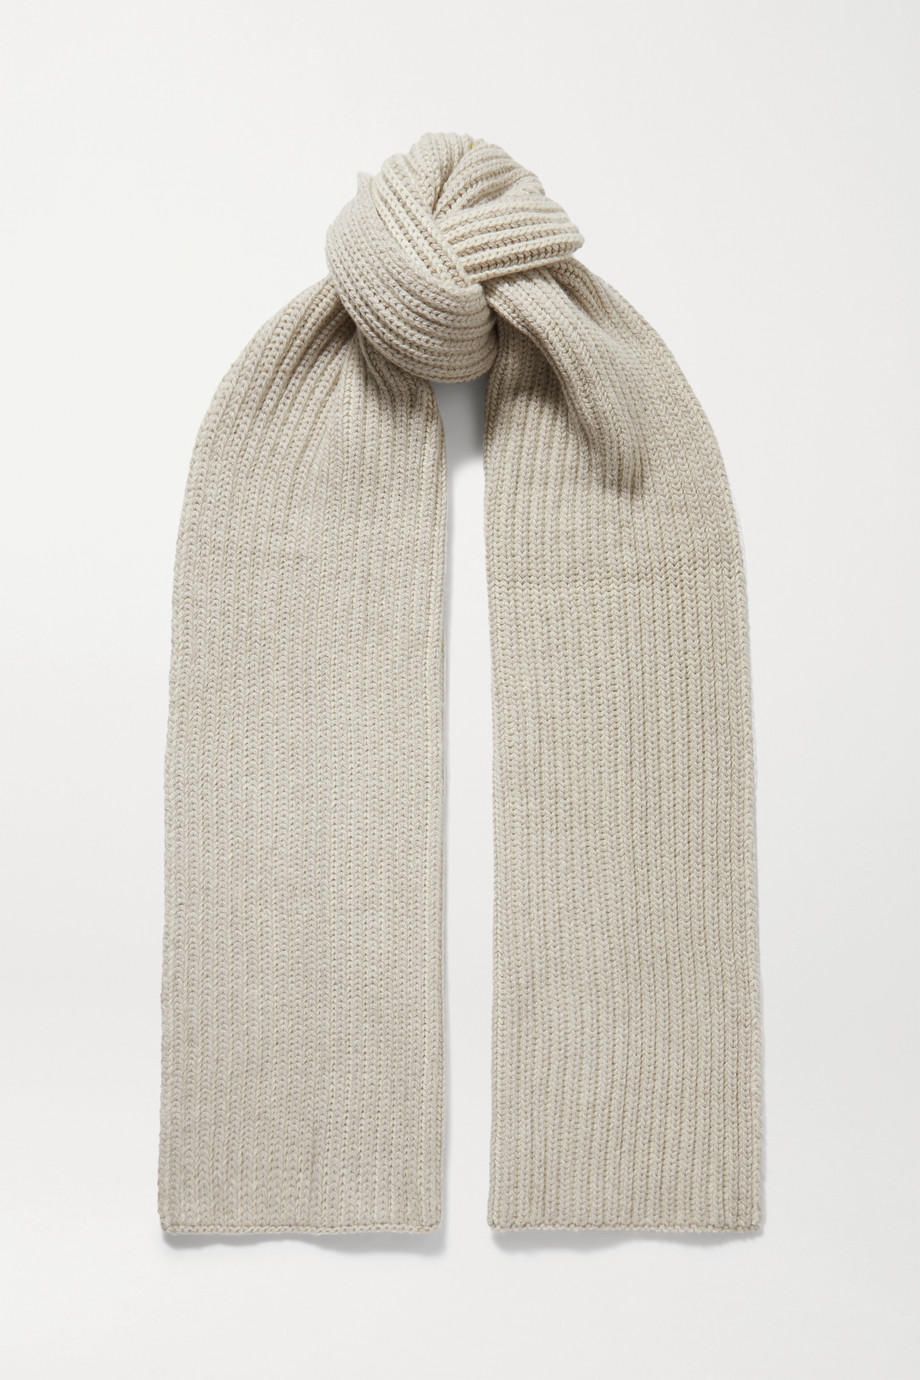 Loro Piana Two-tone ribbed cashmere scarf